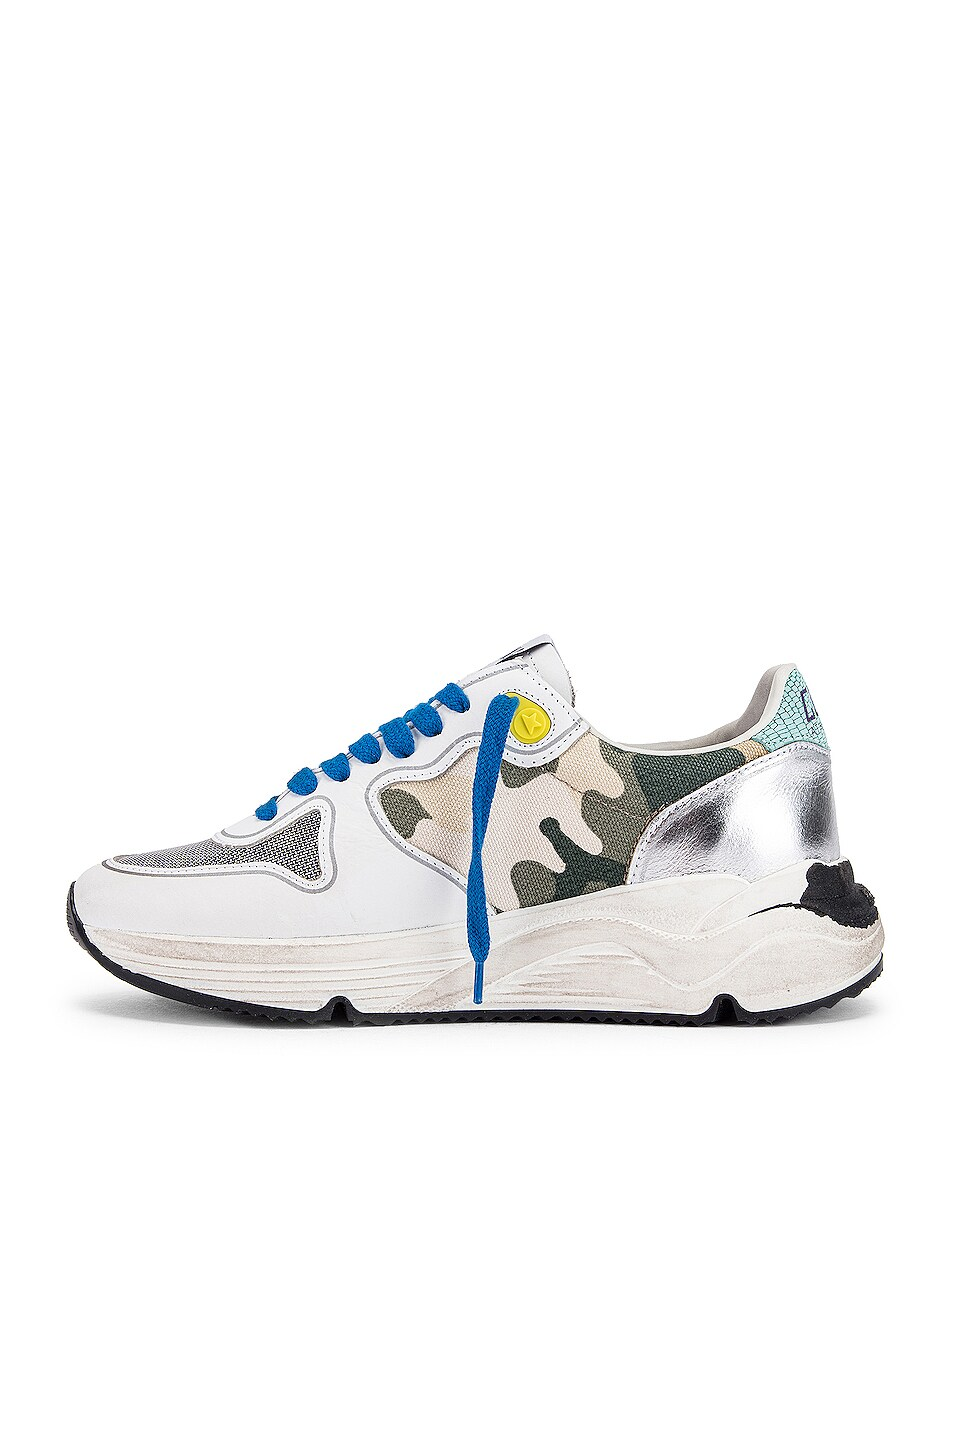 Image 5 of Golden Goose Running Sole Sneaker in White & Camouflage